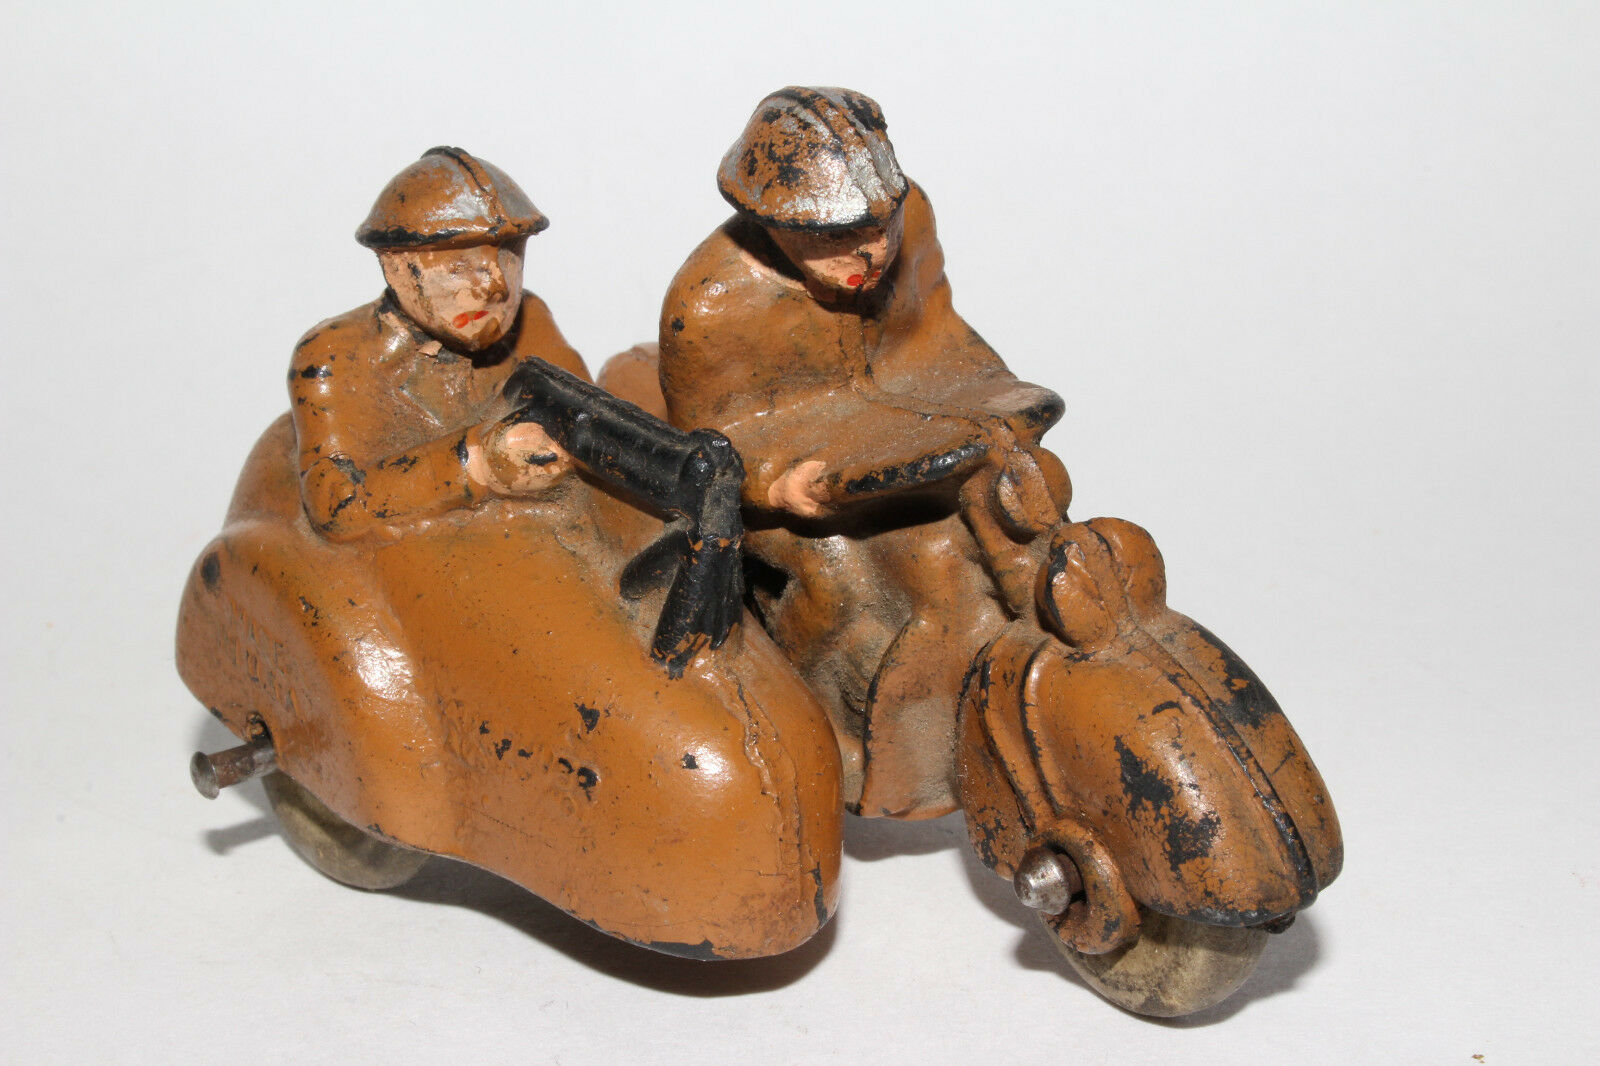 1930's Auburn Rubber Military Motorcycle Motorcycle Motorcycle with Sidecar, Kahki color, Original cae71d